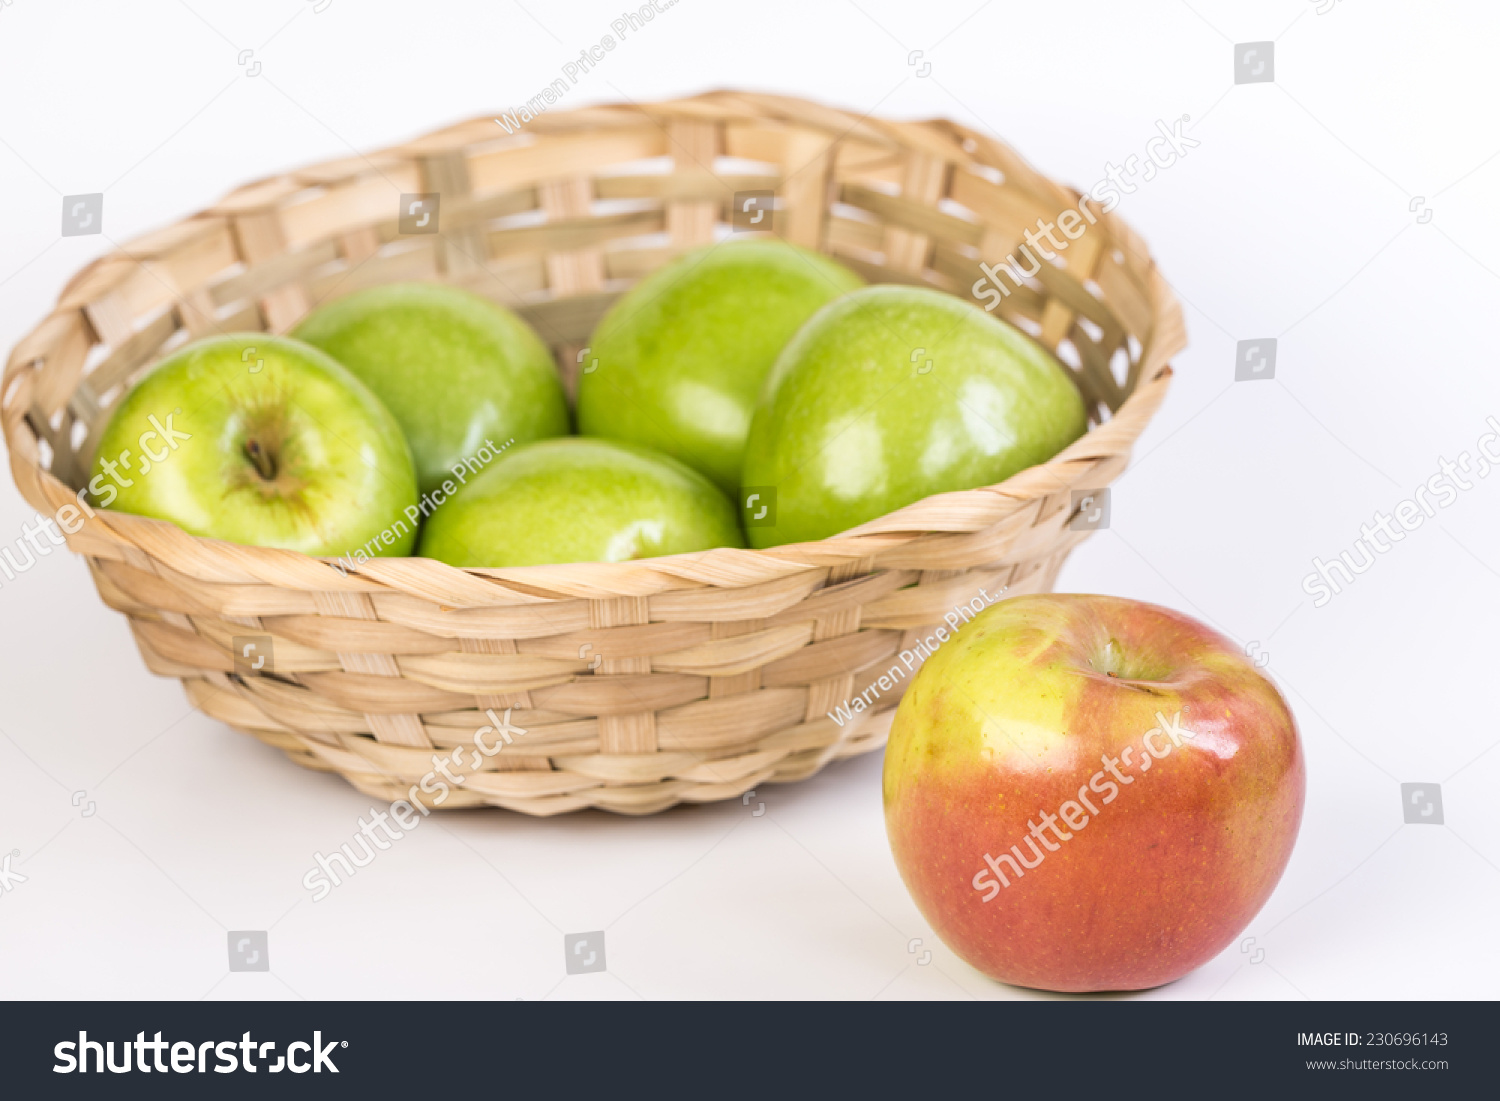 green and red apples in basket. green apples in basket with red apple outside, alone. conceptually, ostracized due to and p